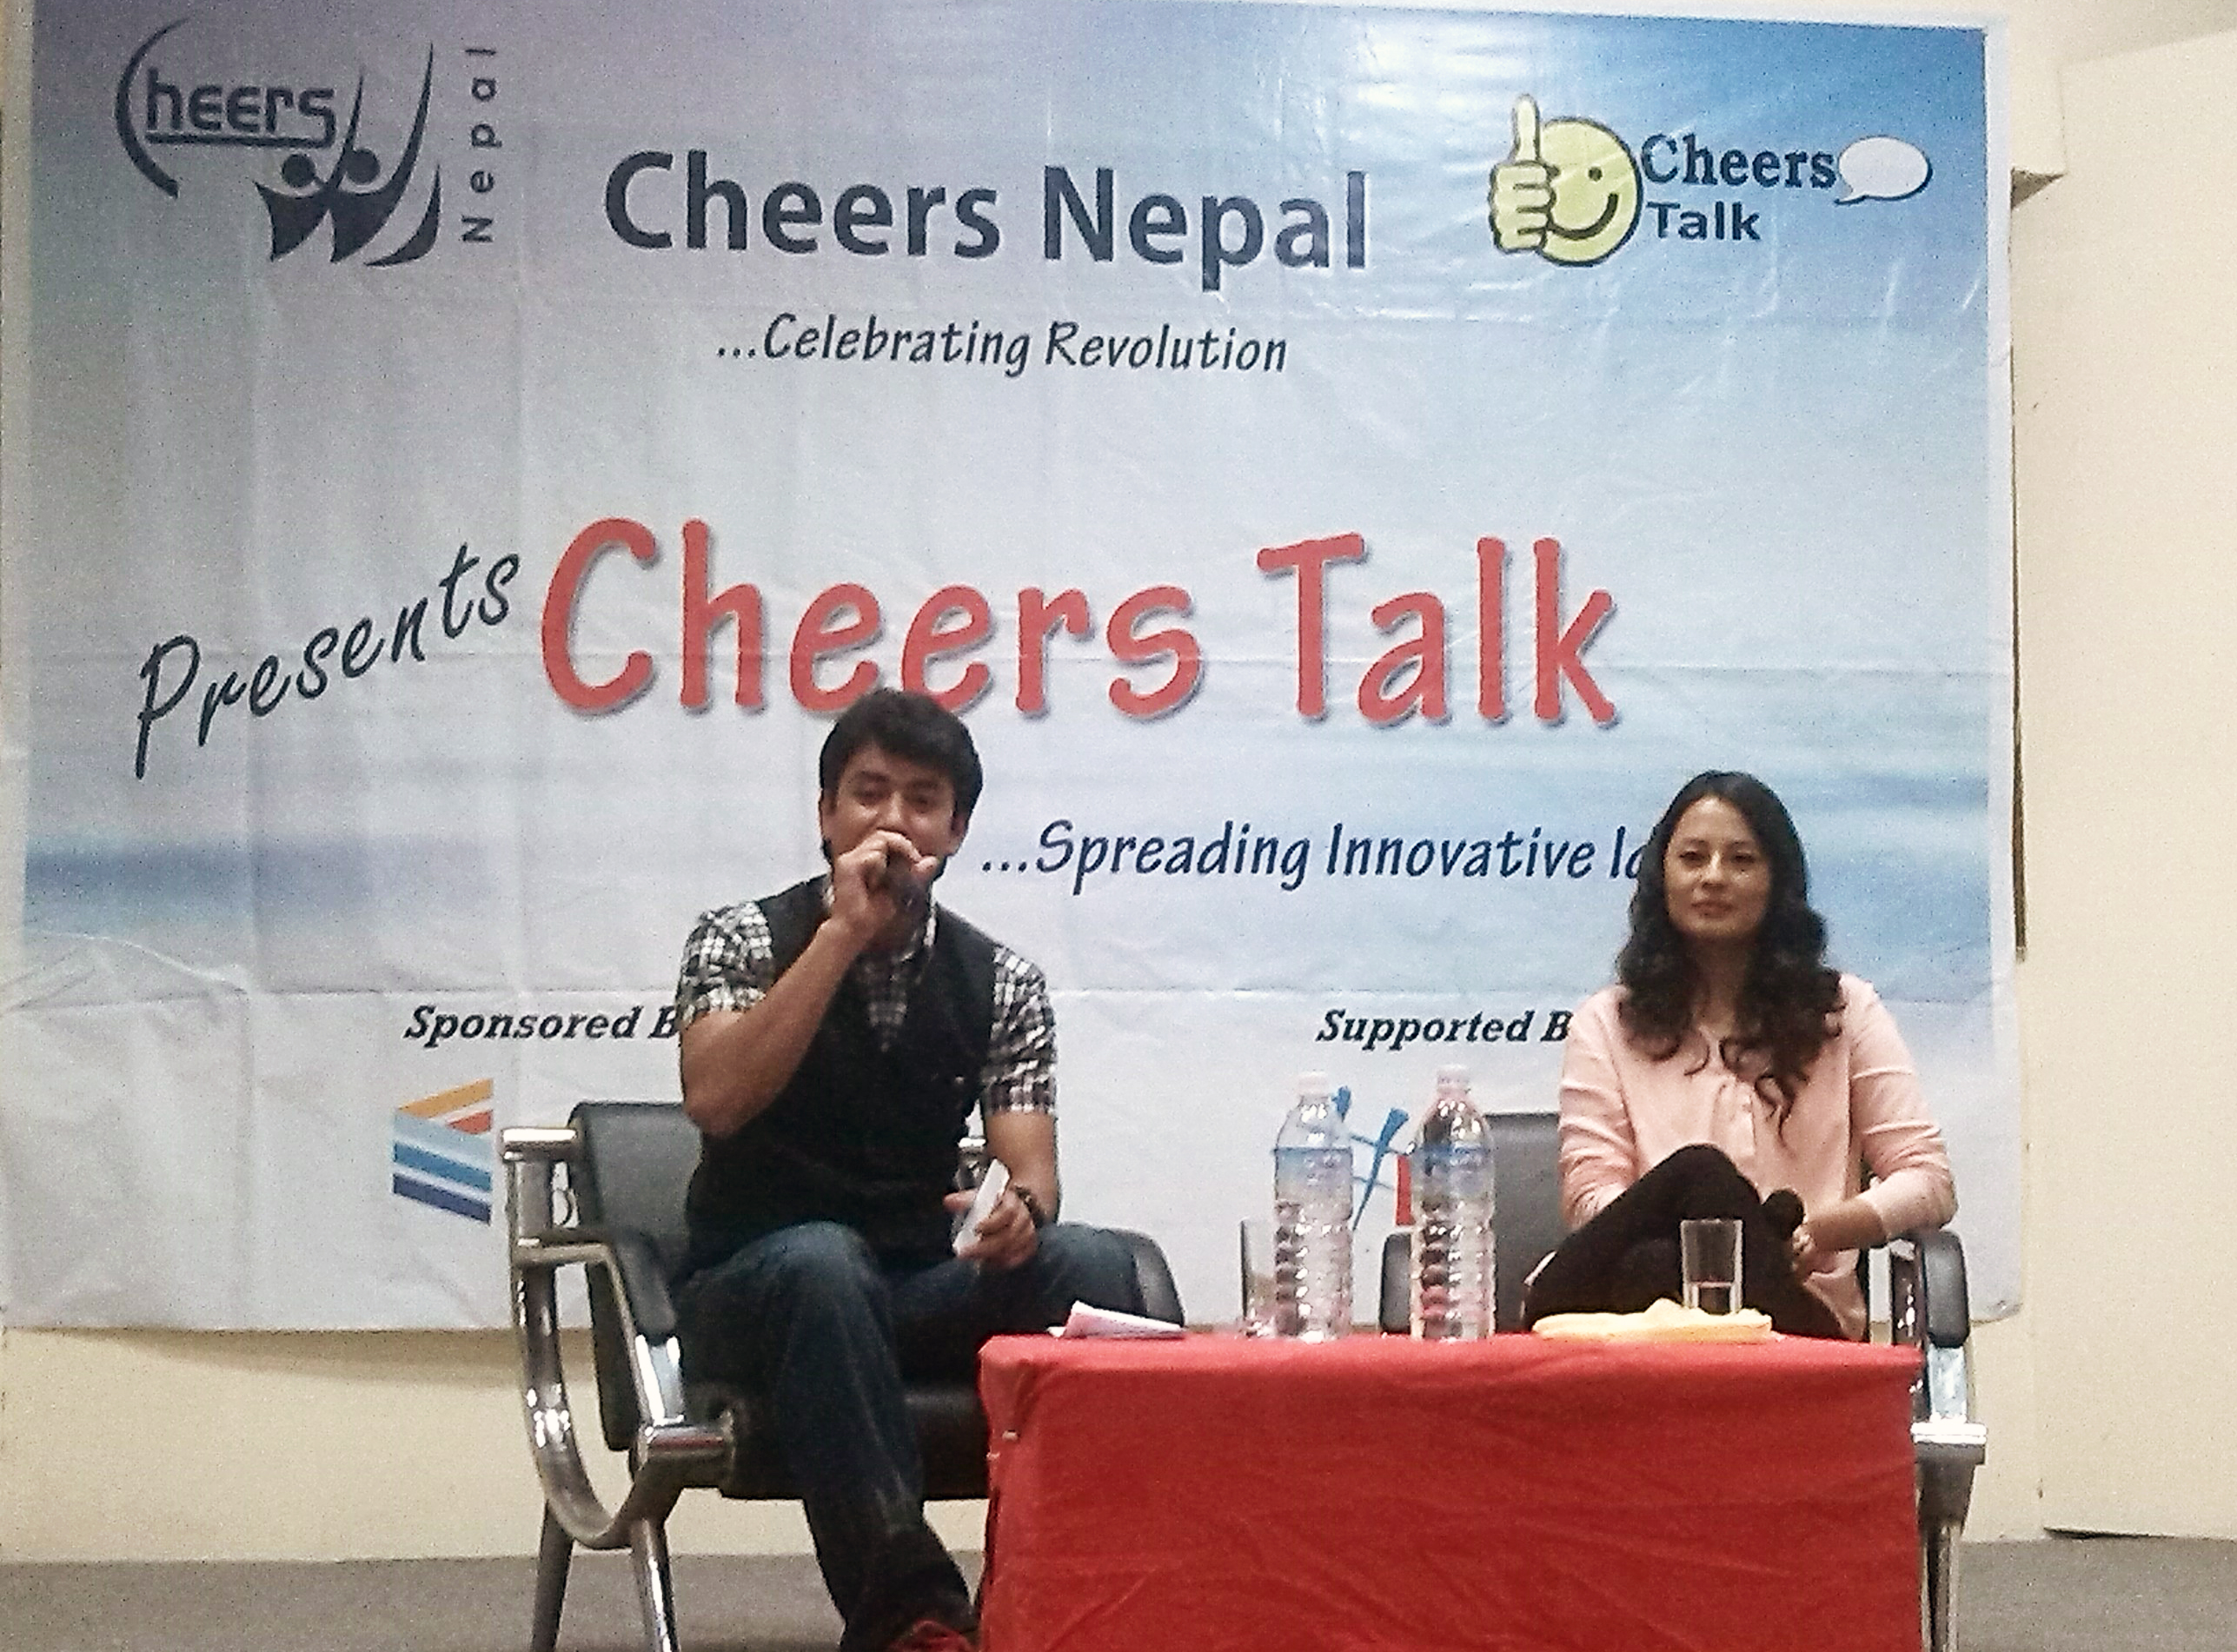 Cheers Talk with Malvika Subba